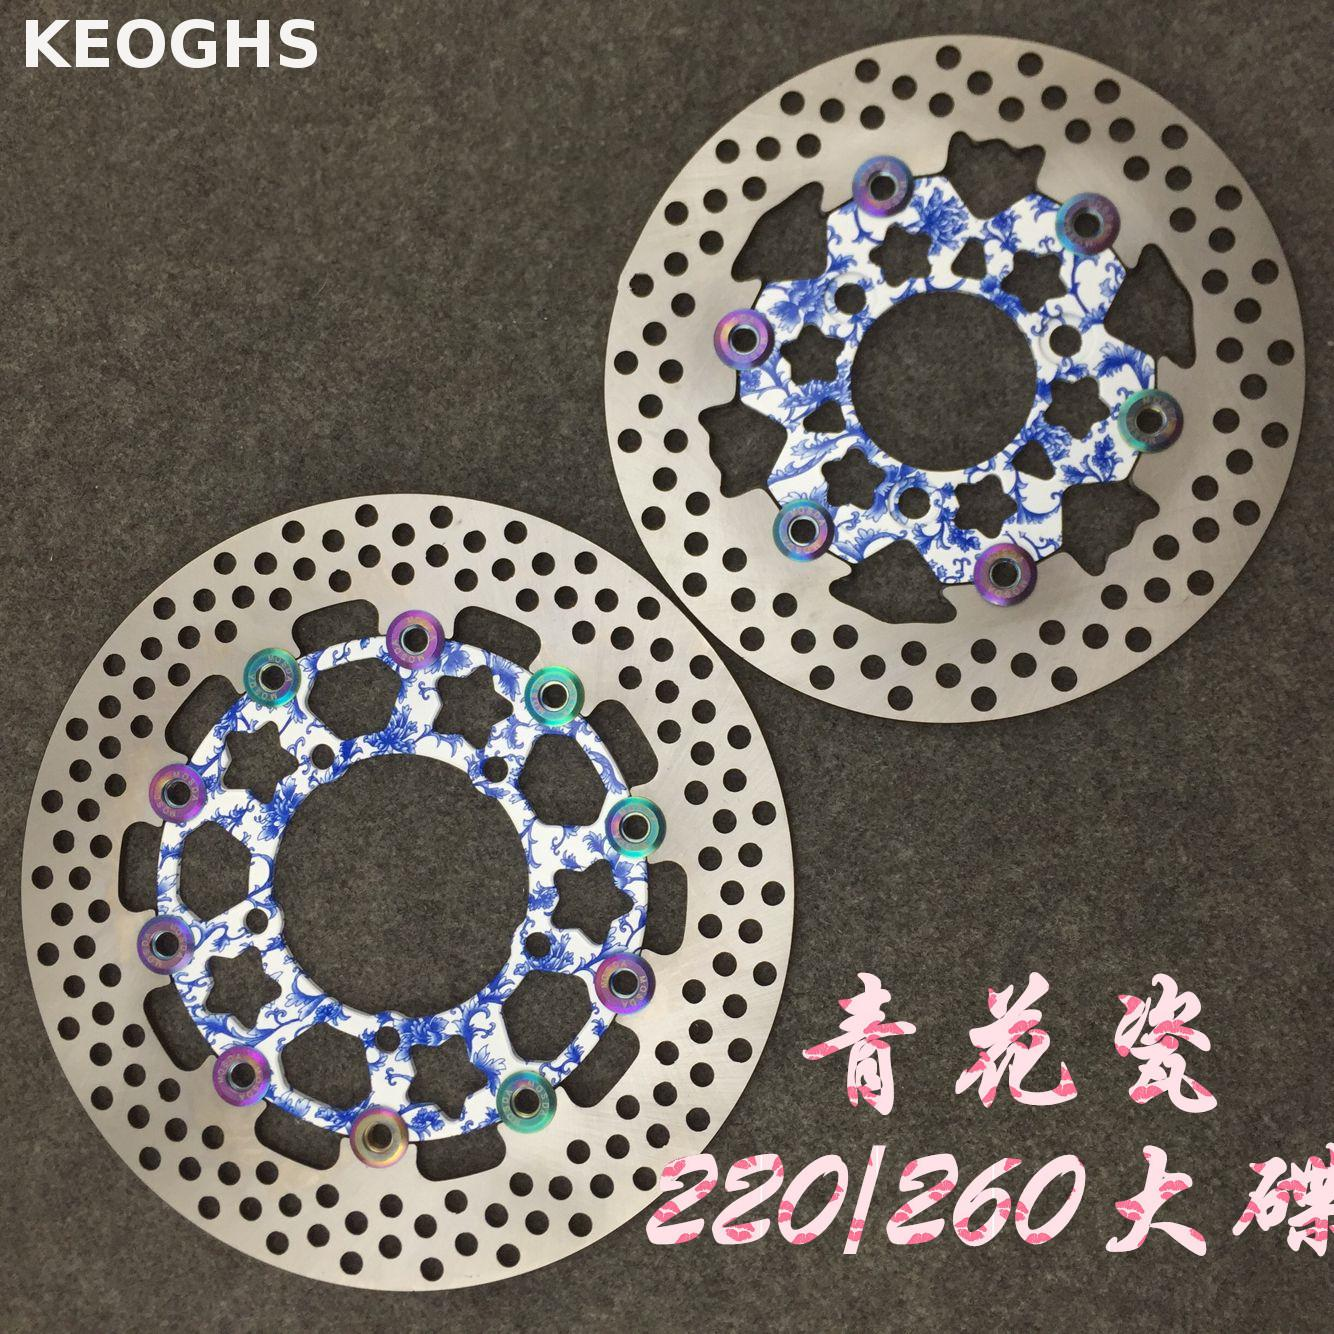 Keoghs Motorcycle Brake Disc 220mm 260mm White And Blue Chinese Style For Yamaha Scooter Cygnus modify keoghs akcnd 220mm floating motorcycle brake disc brake rotor for yamaha scooter rear and front modify